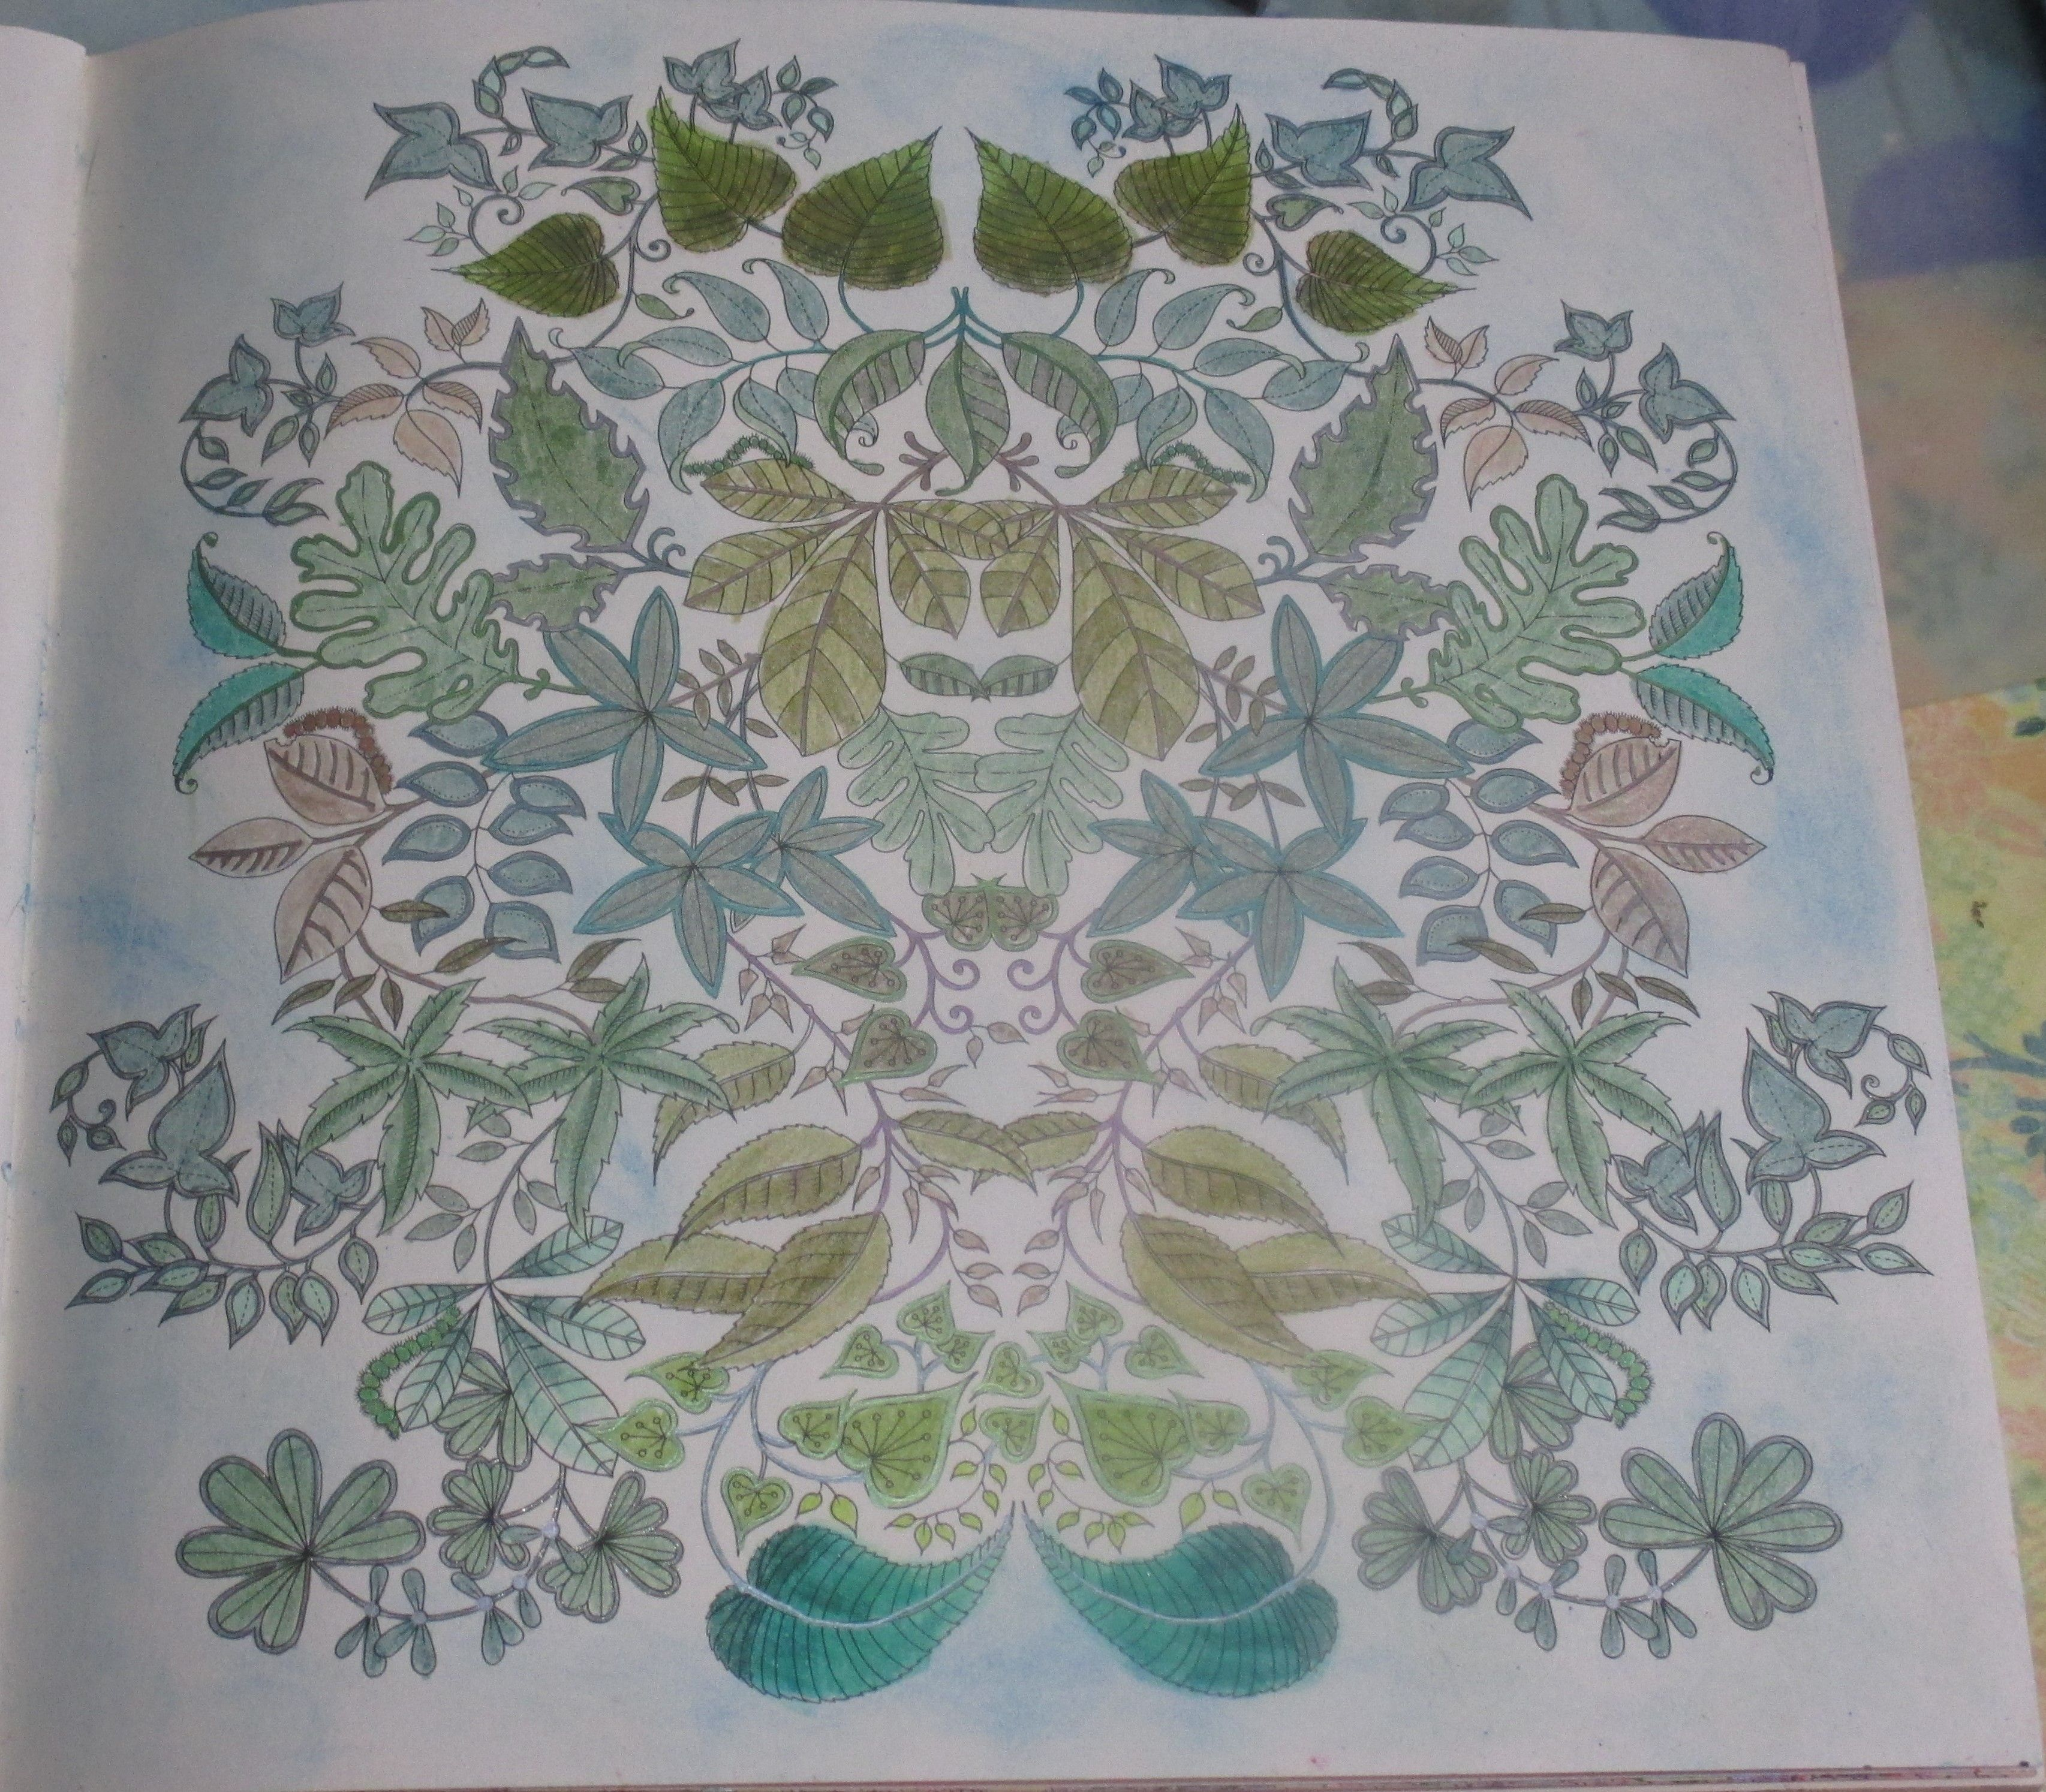 The secret garden coloring book target - Johanna Basford Secret Garden Colored In Tombow Markers